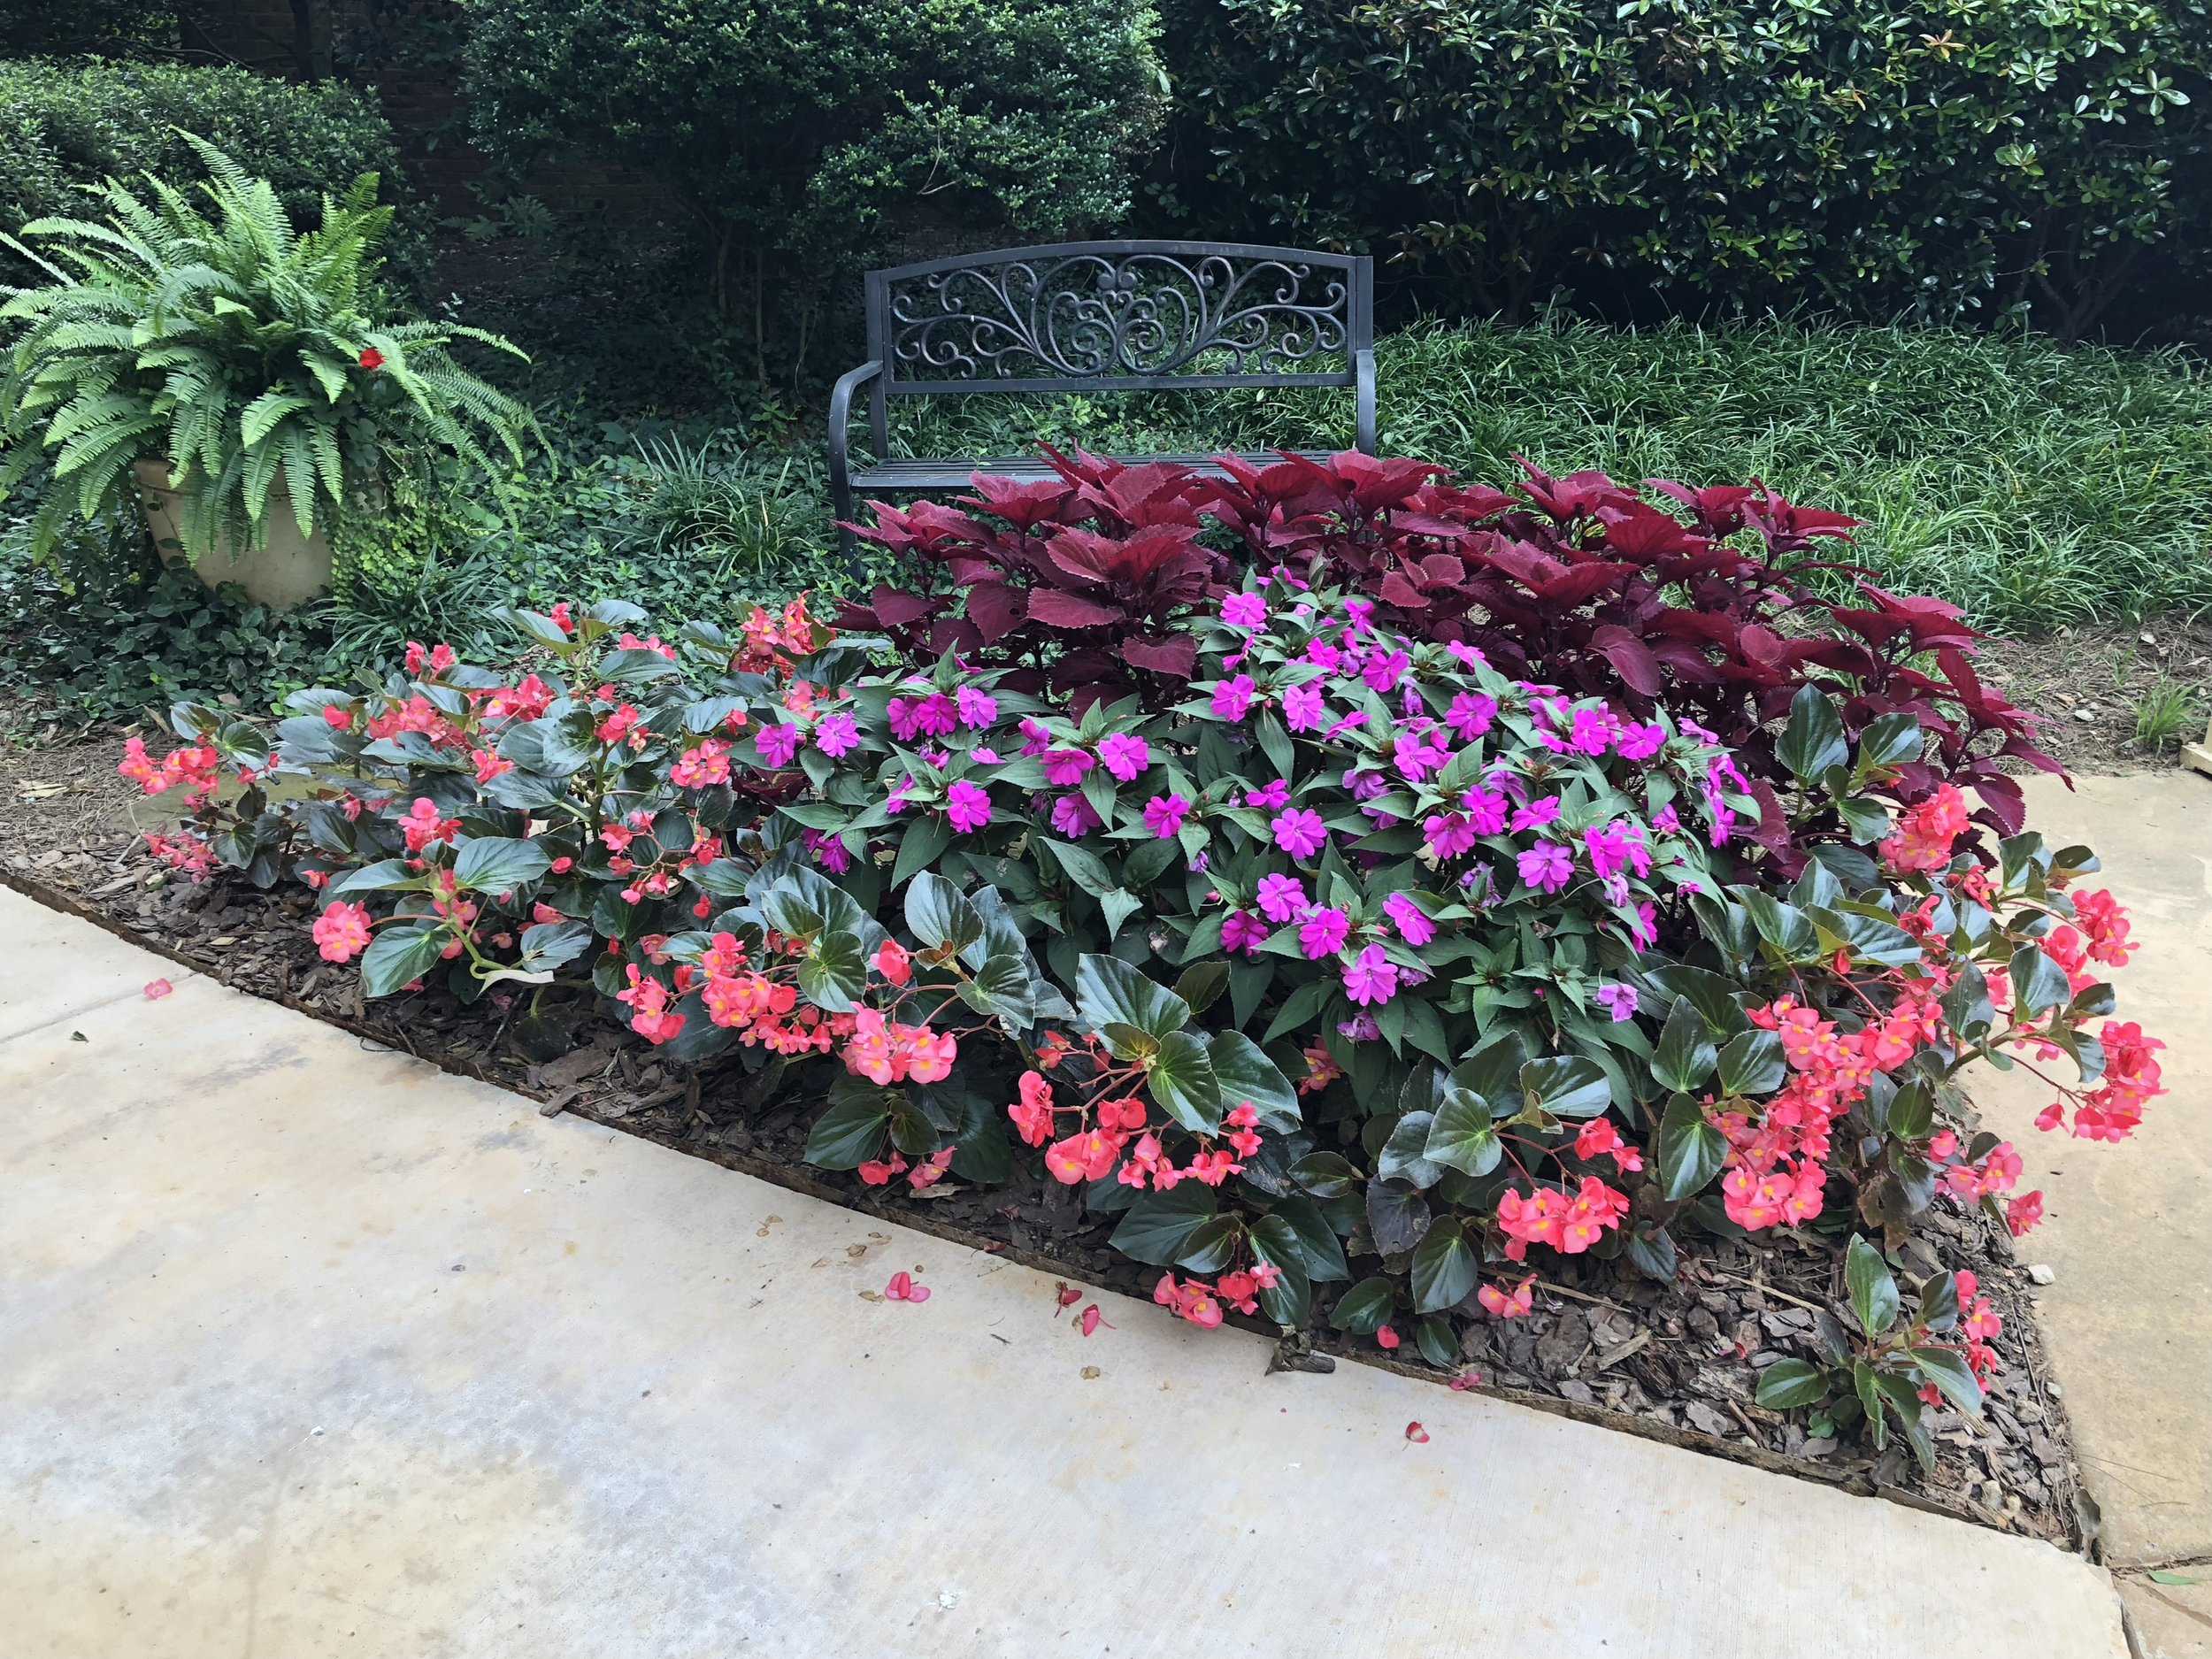 "- ""Our experience with the Corners Industries team has been nothing less than outstanding. The weekly service leaves our yard immaculate. Their team truly goes the extra mile each week. The flowers they planted in the spring are thriving and absolutely gorgeous. The team itself is a joy interact with and we could not be happier with service.""- Shelley Lloyd"